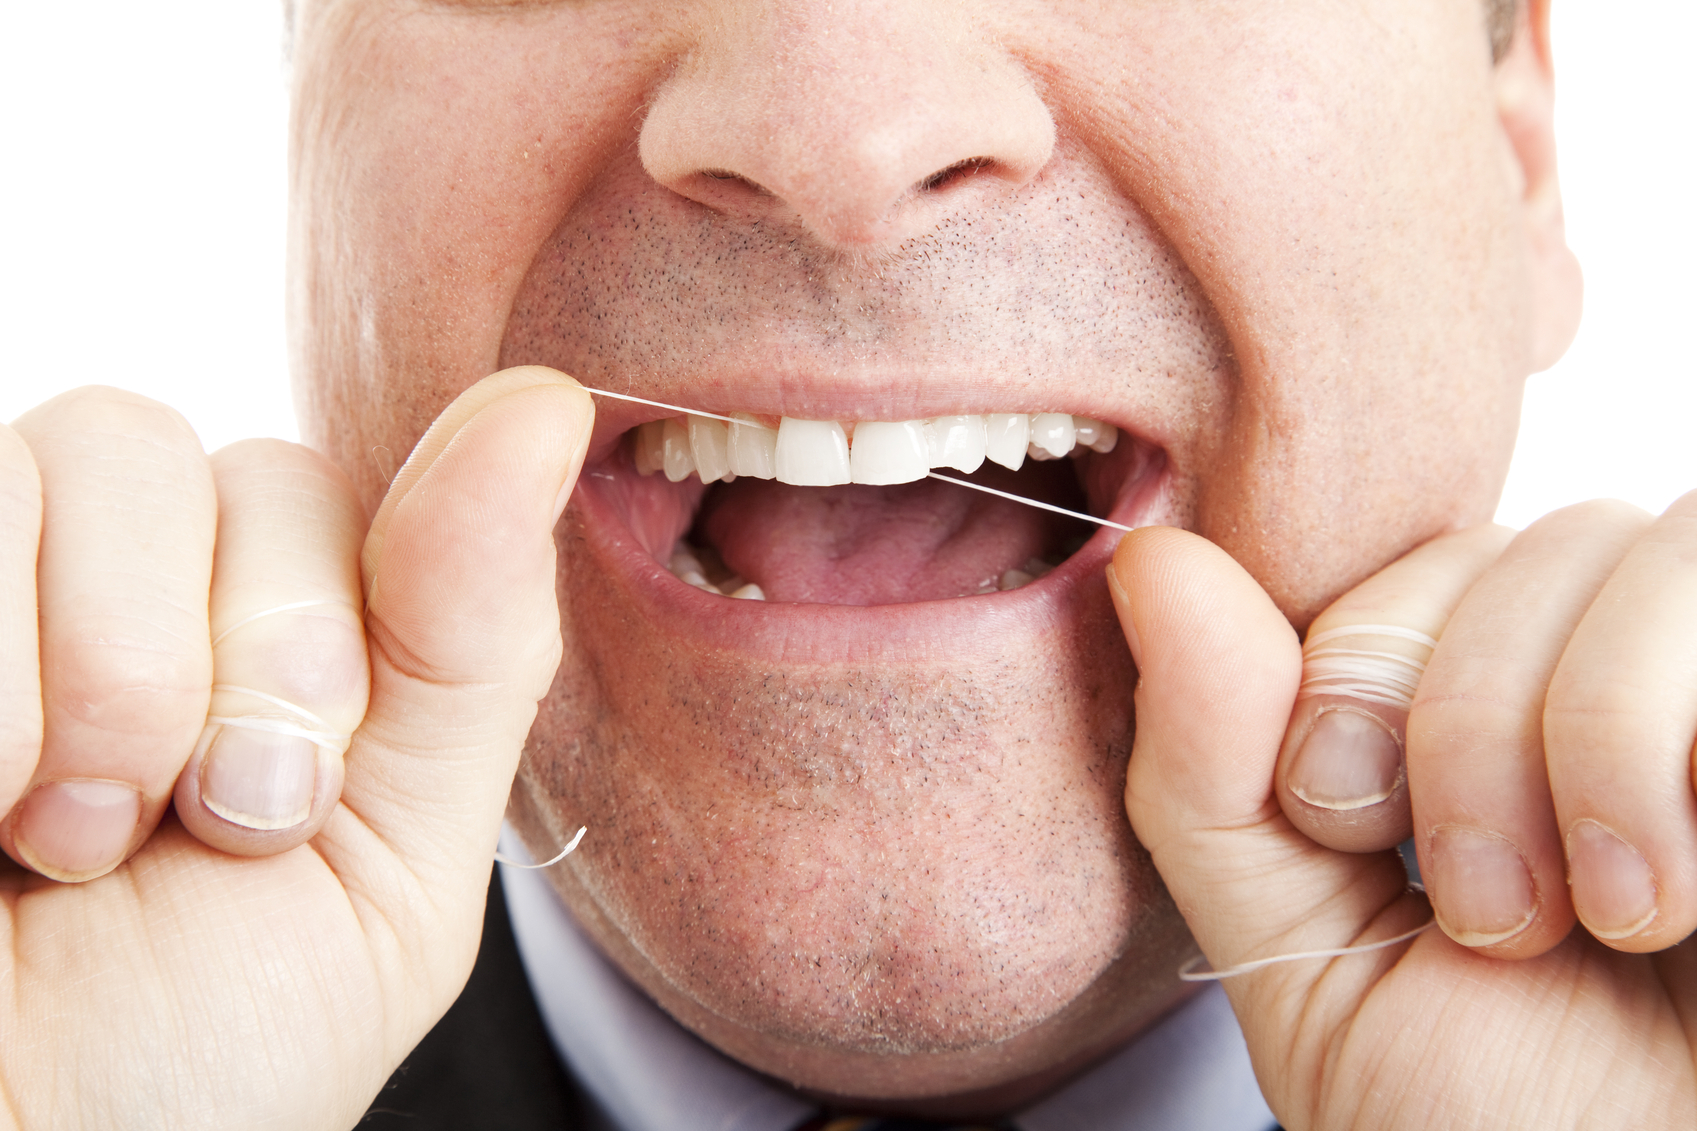 Does Flossing Help Or Not? The Evidence Is Mixed At Best